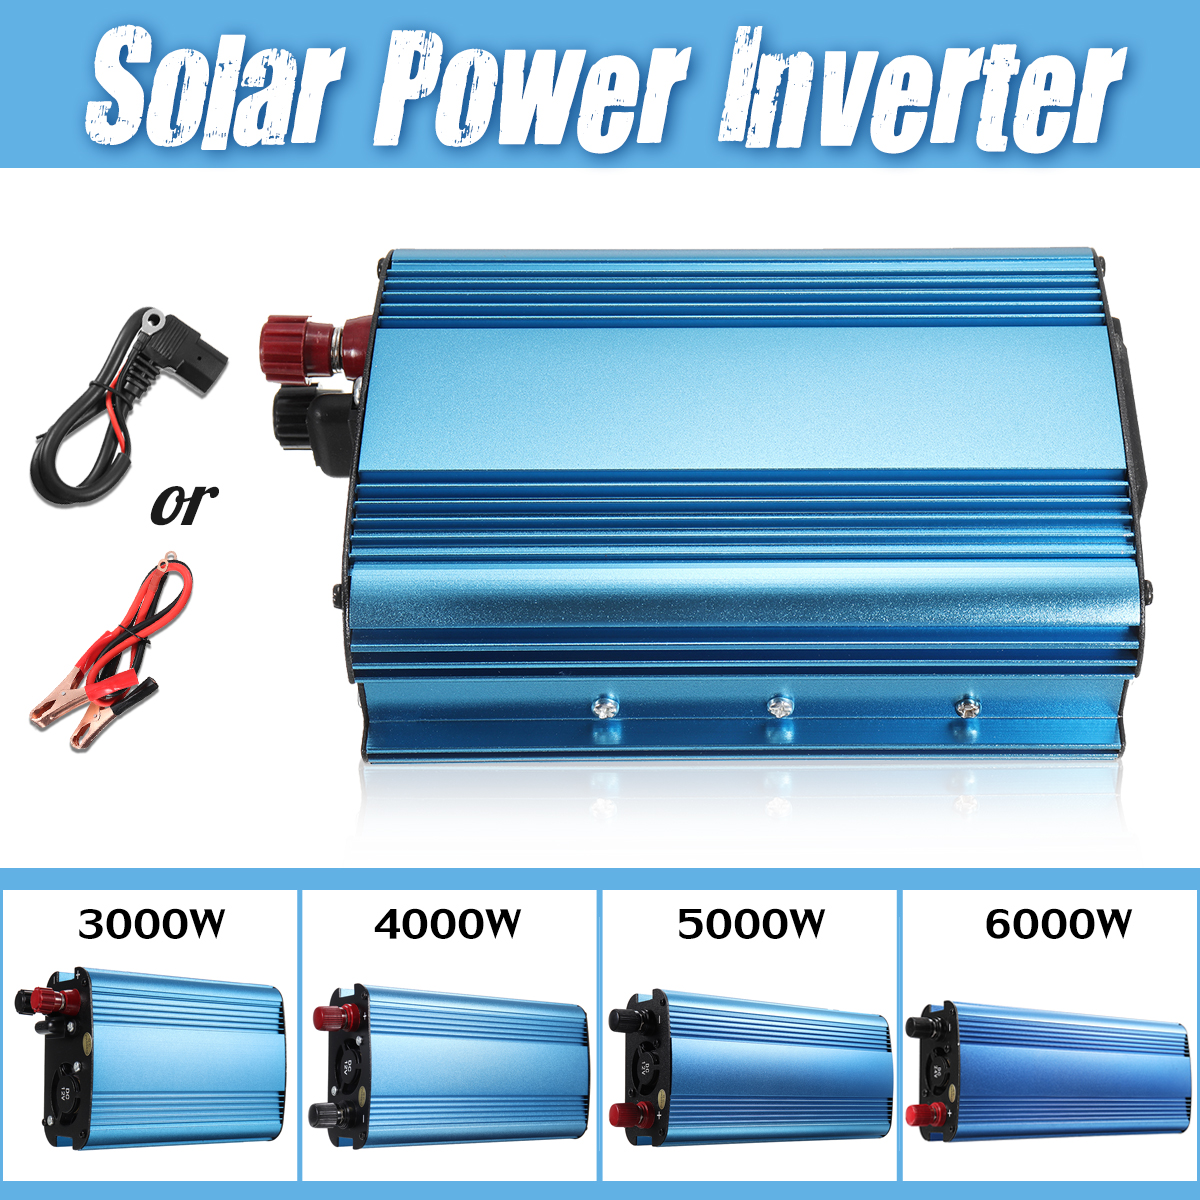 3000W/4000W/5000W/6000W Peak Power Inverter DC 12V/24V/48V/60V To AC 220V Sine Wave Car Inverter Voltage Transformer Convertor